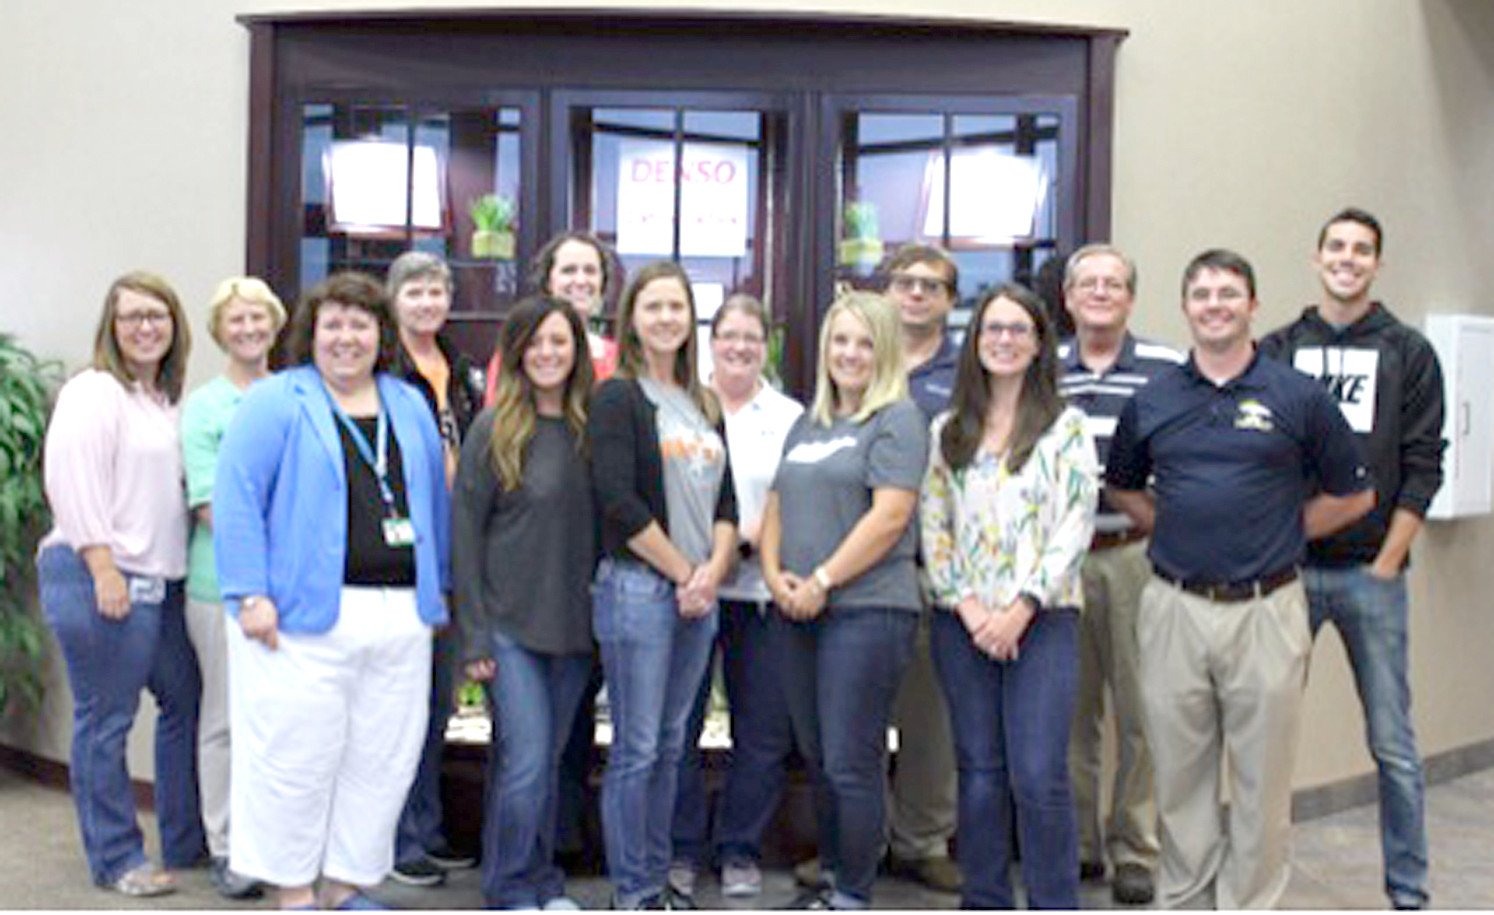 More than 50 DENSO associates and 13 teachers from area schools participated in the four-day Teacher Externship held at DENSO Manufacturing in Athens recently.